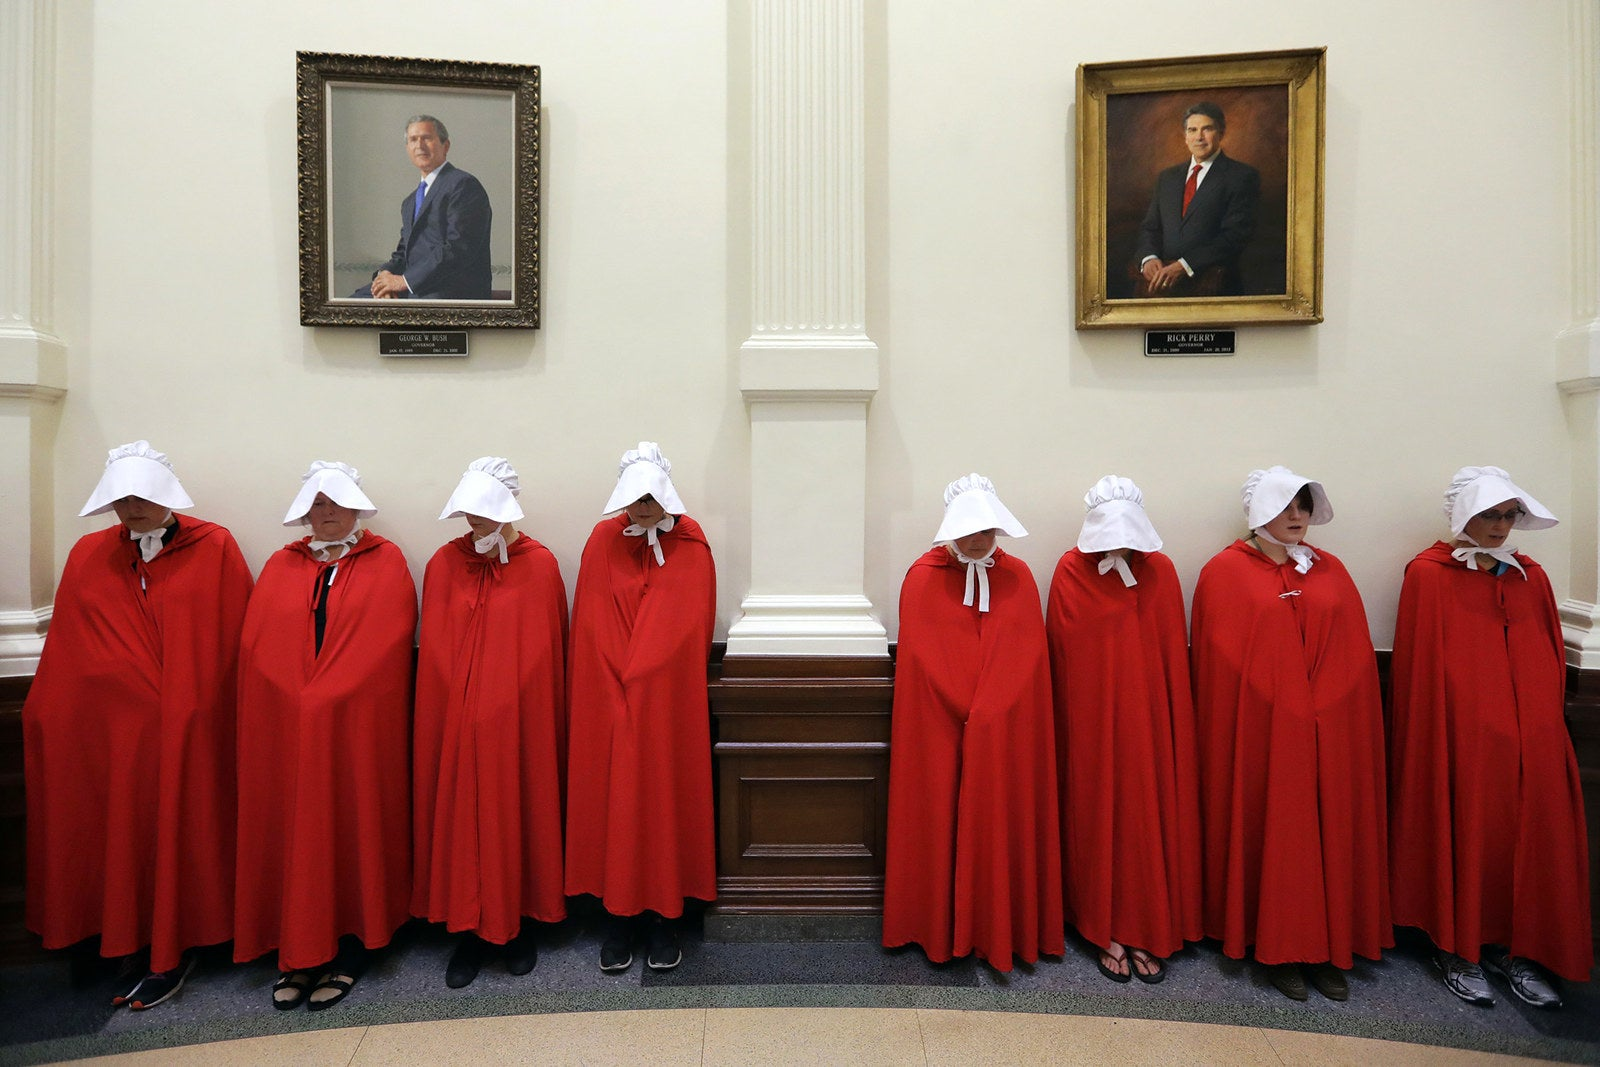 """Protesters dressed as characters from The Handmaid's Tale chant in the Texas Capitol Rotunda under portraits of former Texas governors George W. Bush and Rick Perry in Austin on July 18. State lawmakers began a special legislative session to tackle conservative priorities that stalled previously; chief among them, a """"bathroom bill"""" targeting transgender people."""